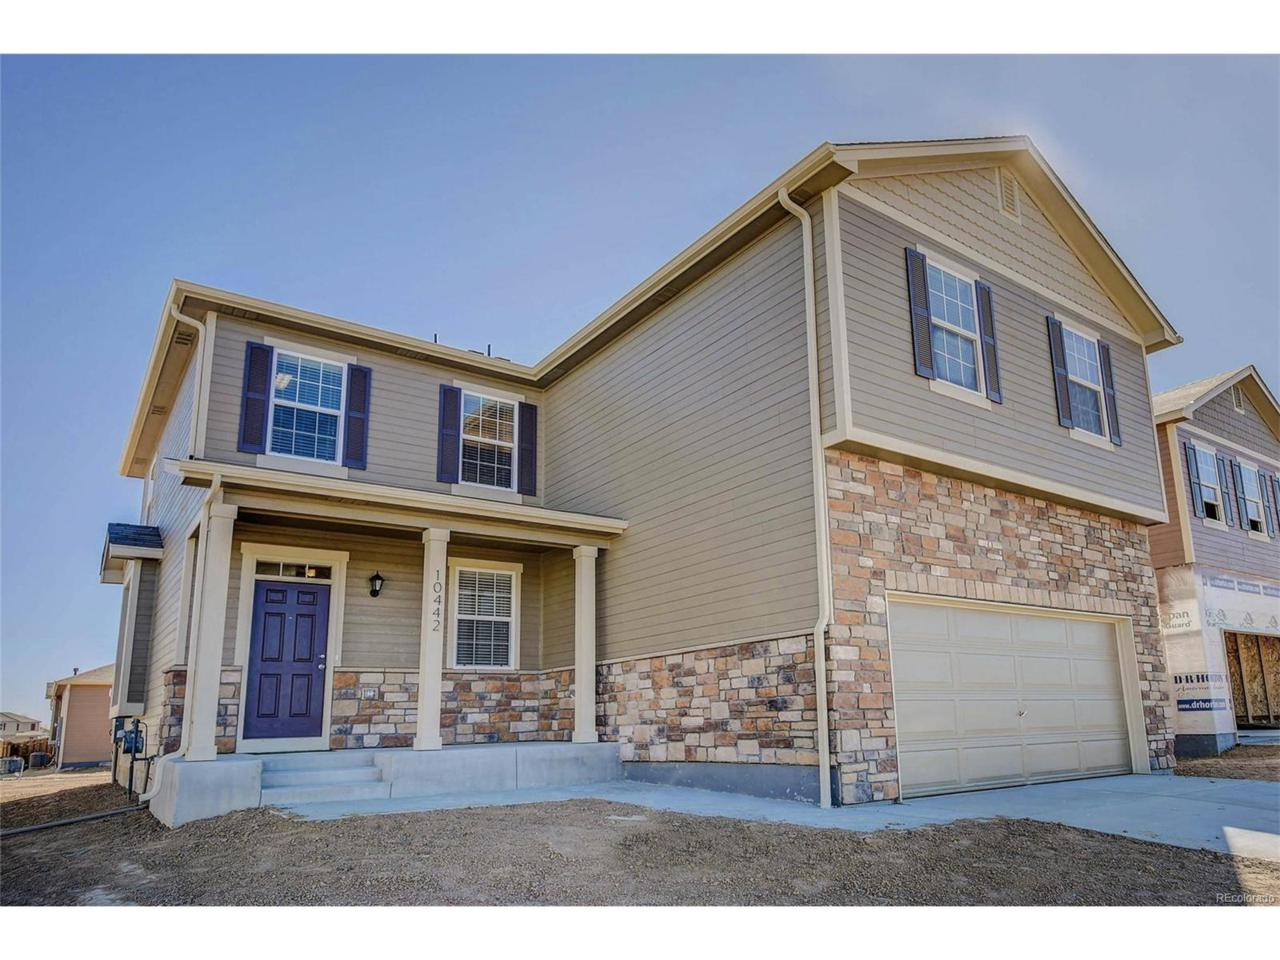 12755 E 104th Place, Commerce City, CO 80022 (MLS #2084067) :: 8z Real Estate